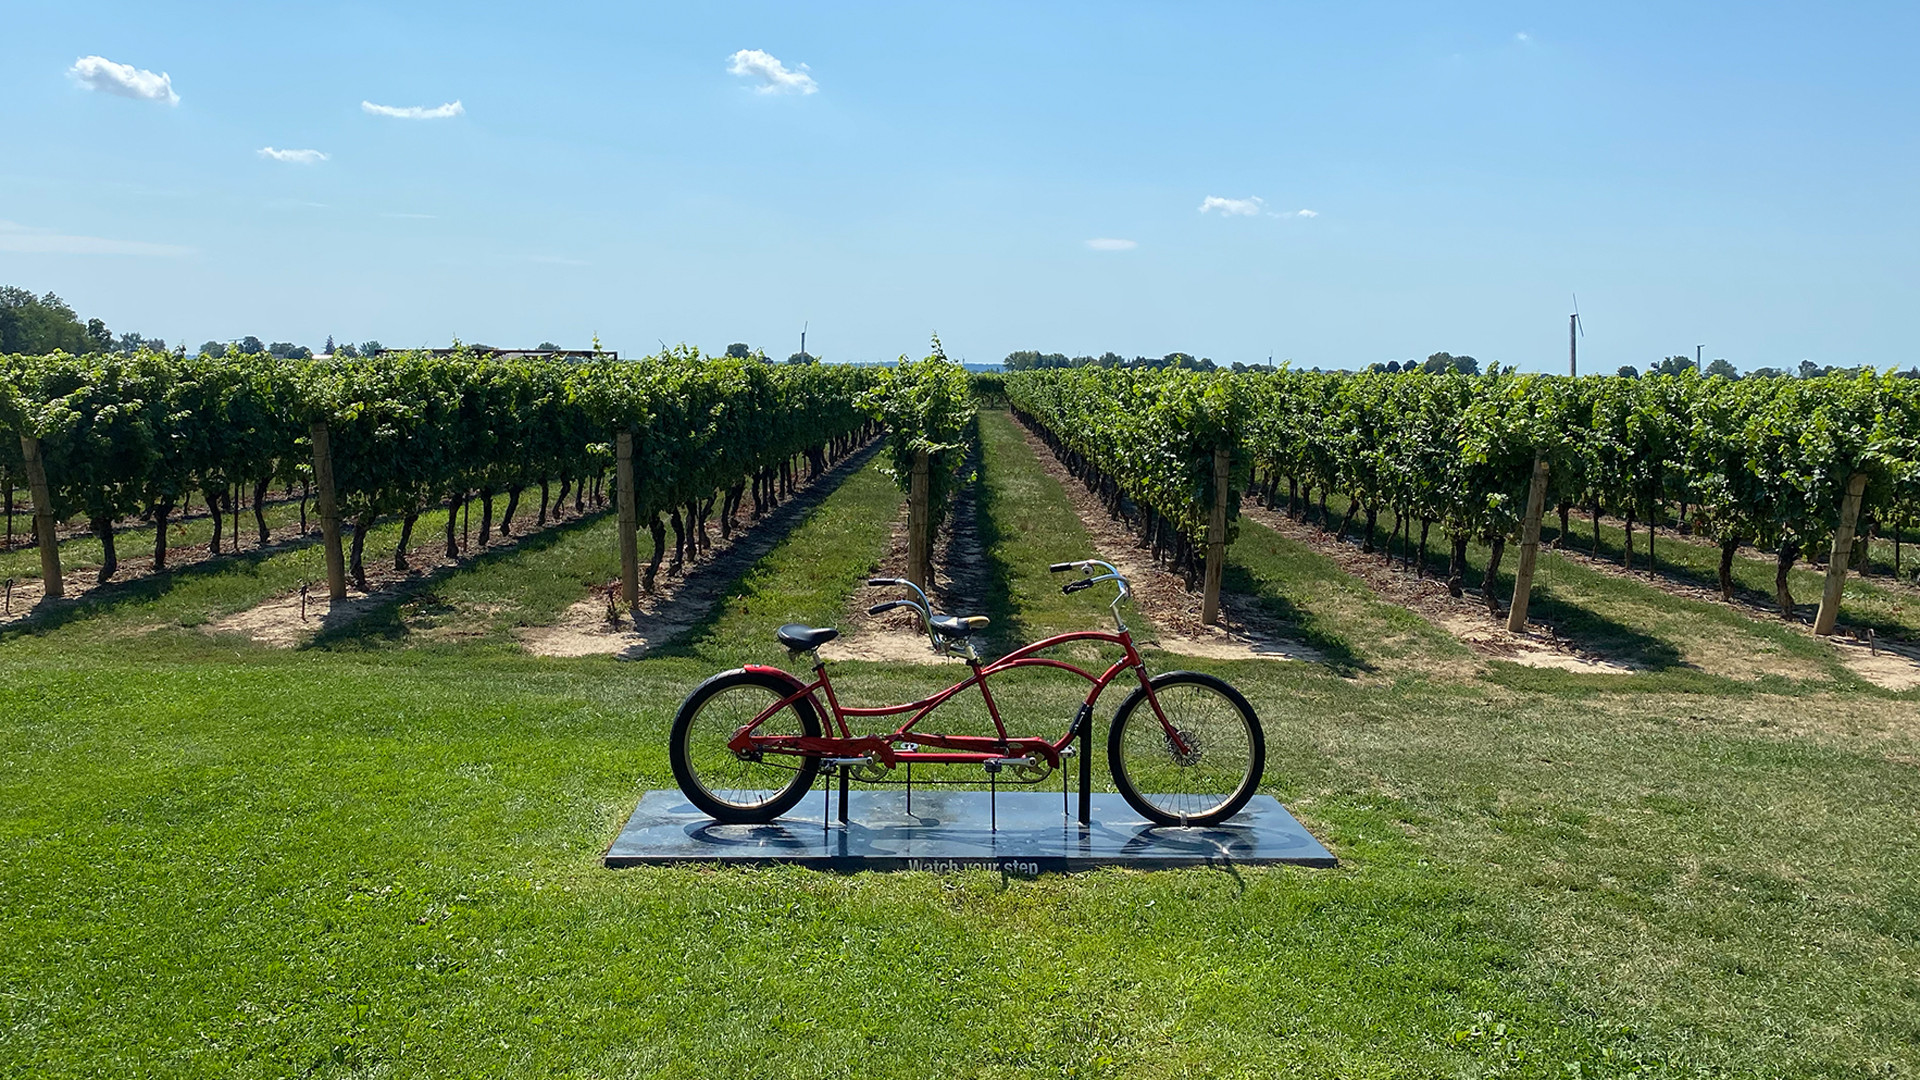 The best wineries in Niagara-on-the-Lake | A bicycle in front of the vines at Jackson-Triggs Winery